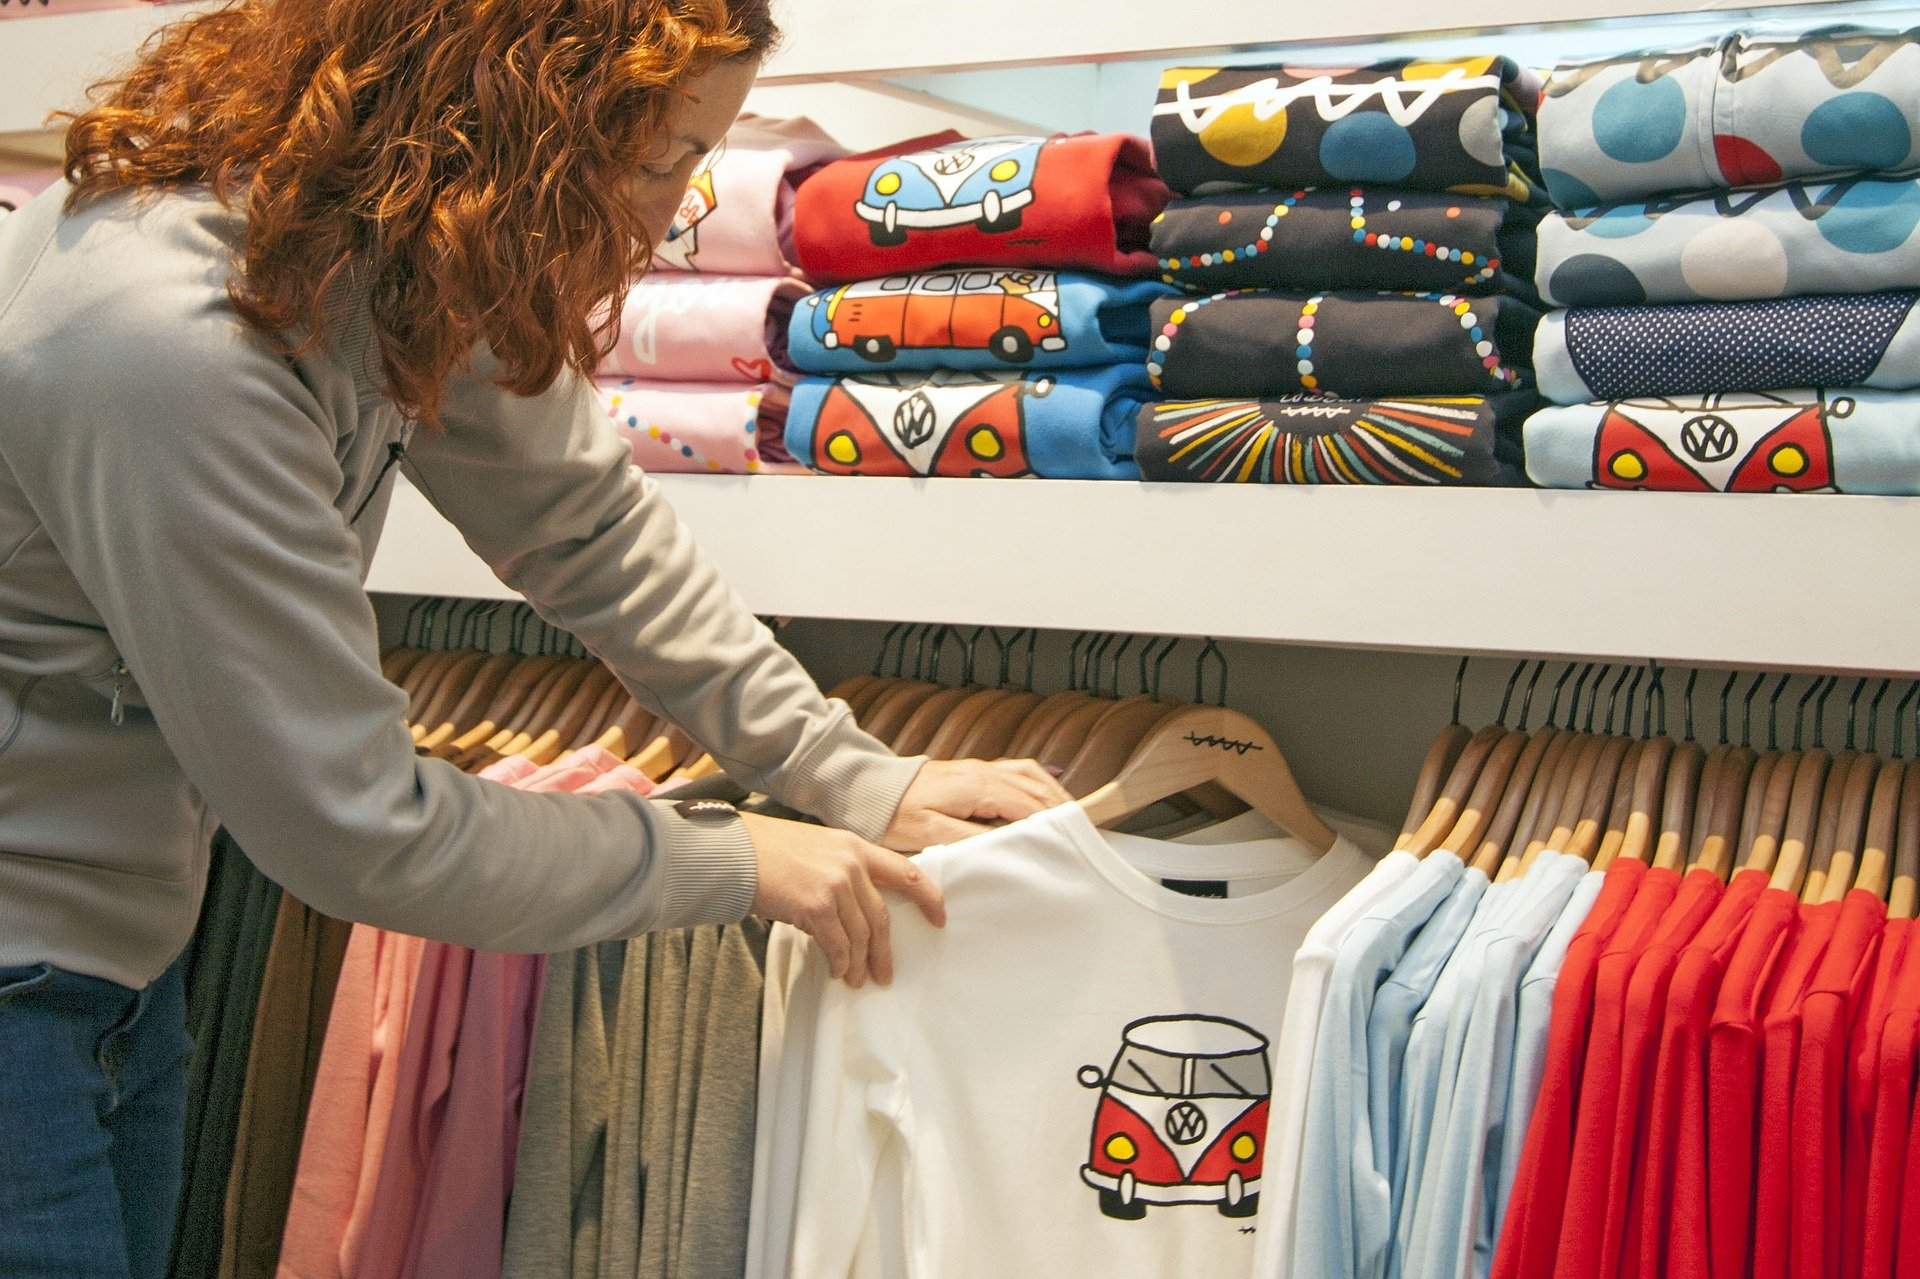 Top 5 Creative T Shirt Ideas for Your Startup